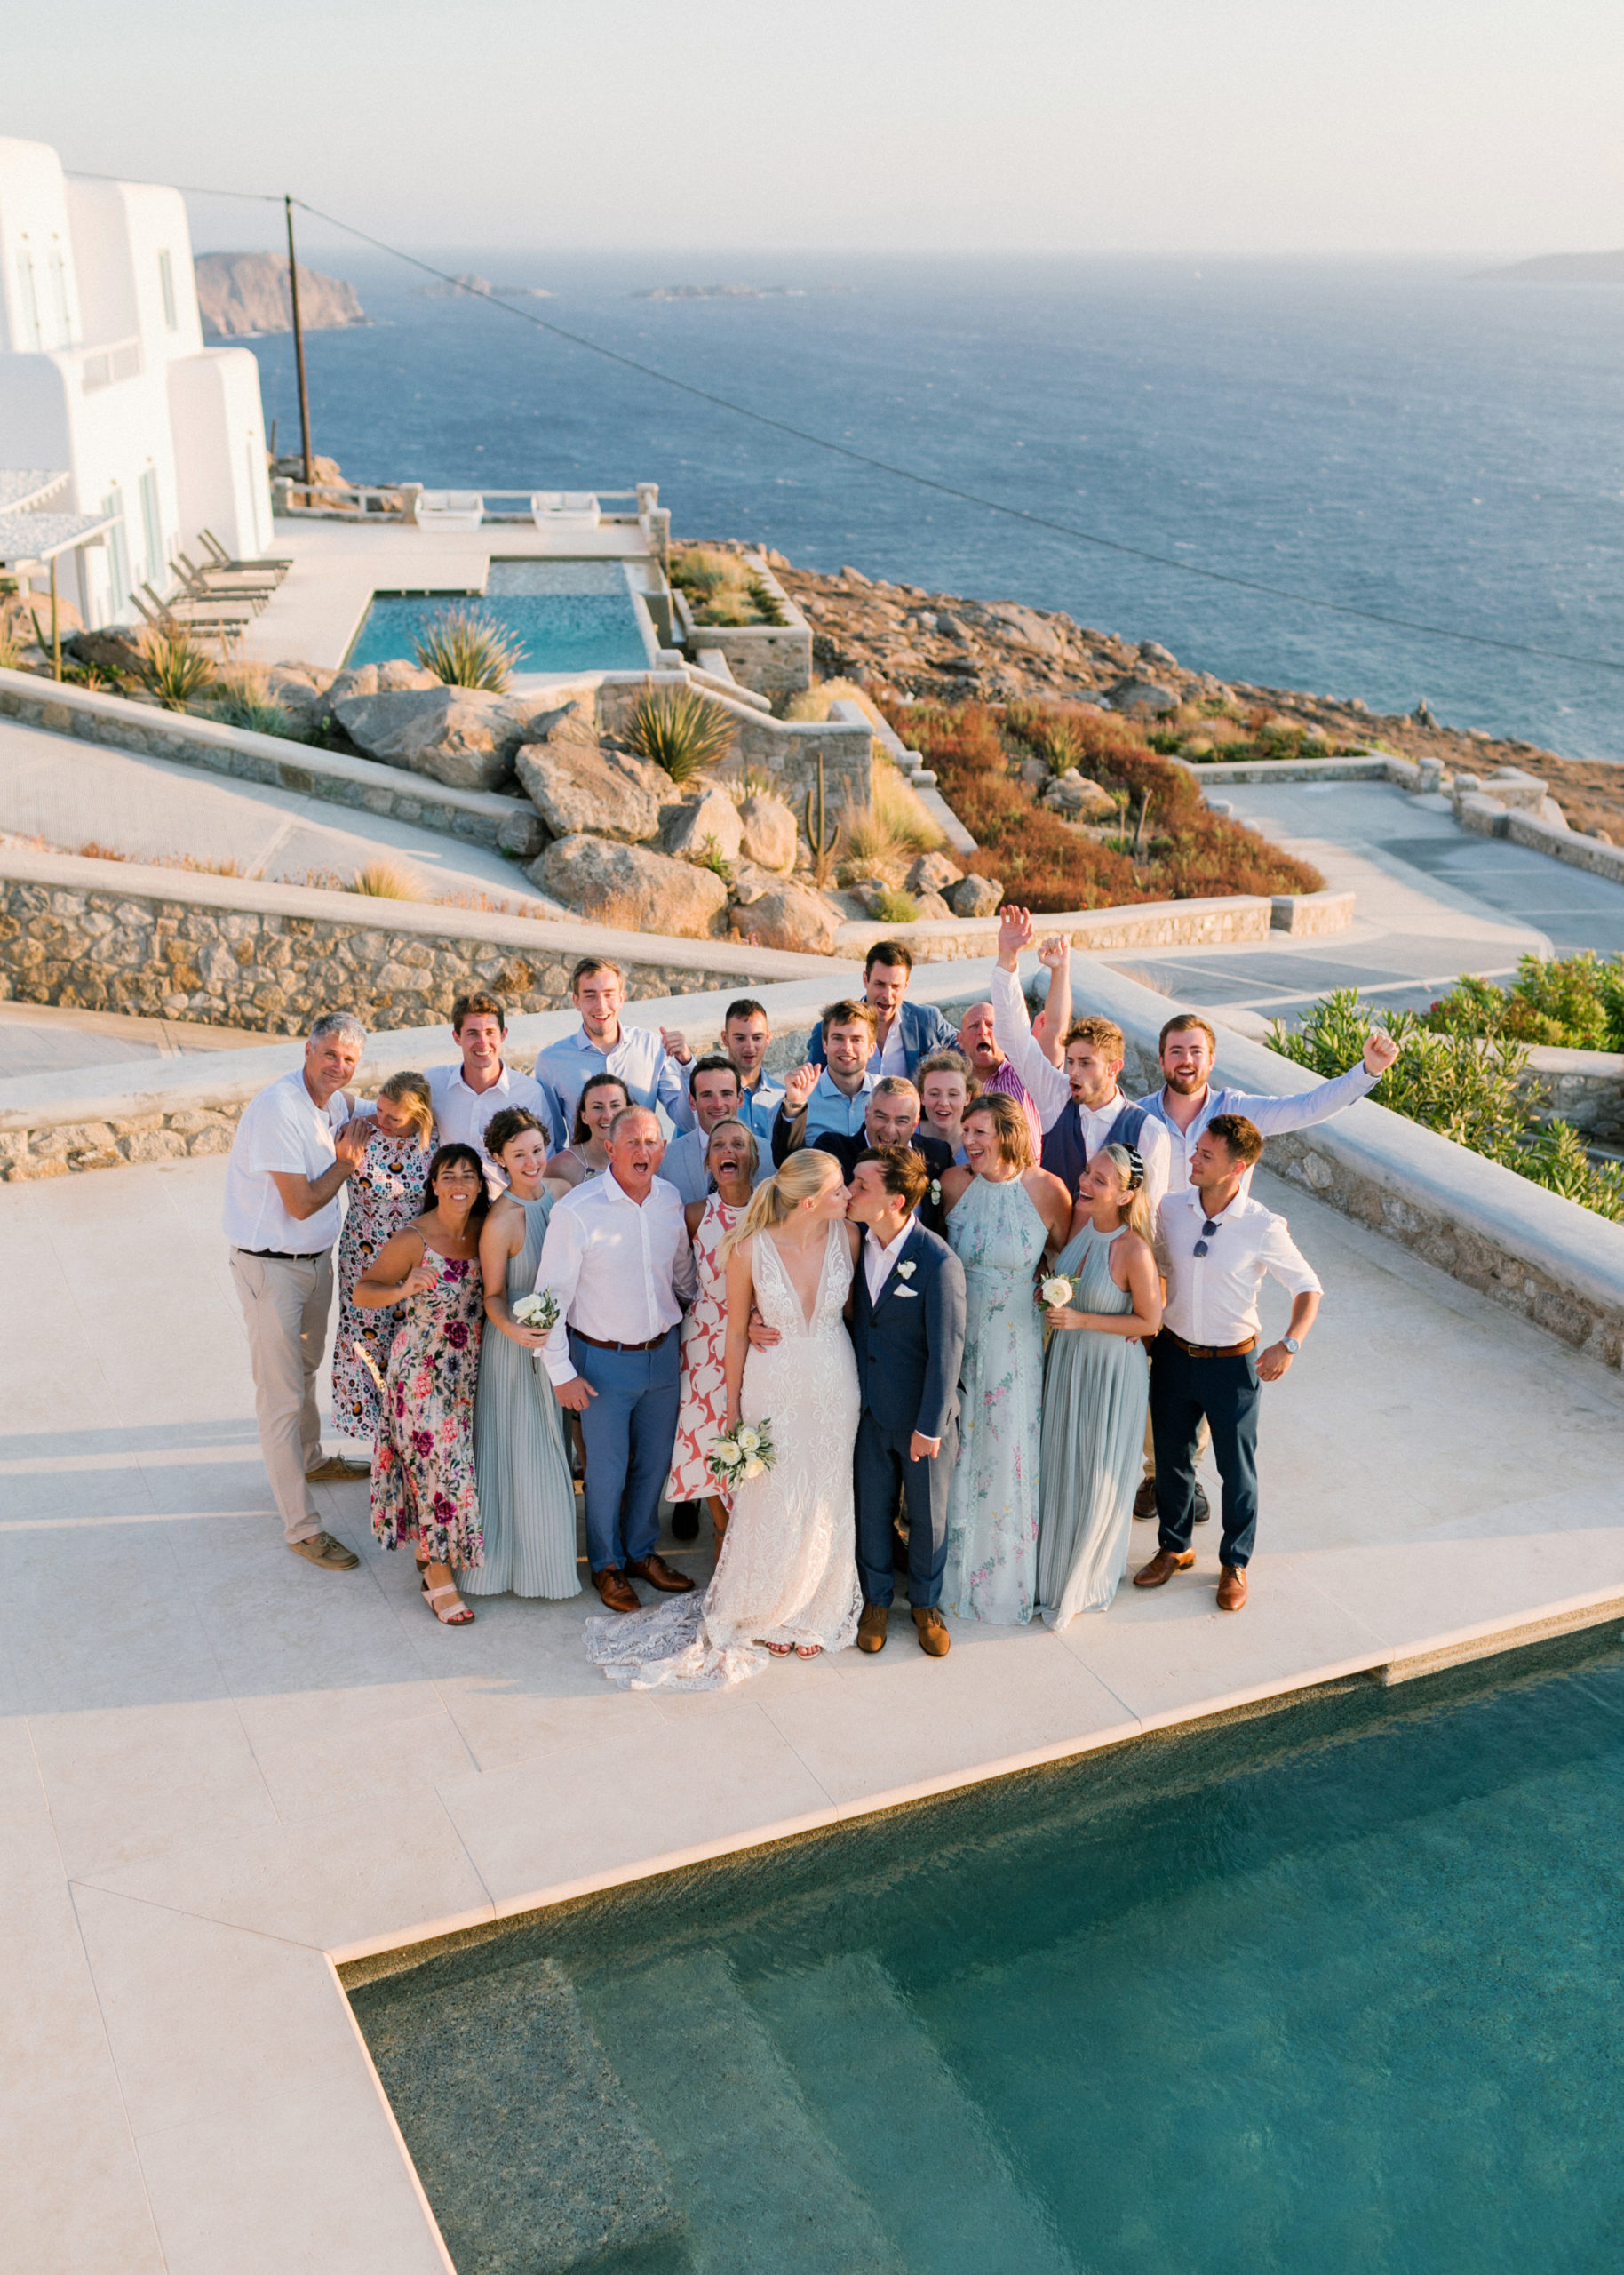 Micro wedidng in Greece - Couple in Mykonos kissing after their intimate wedding celebration in their villa.